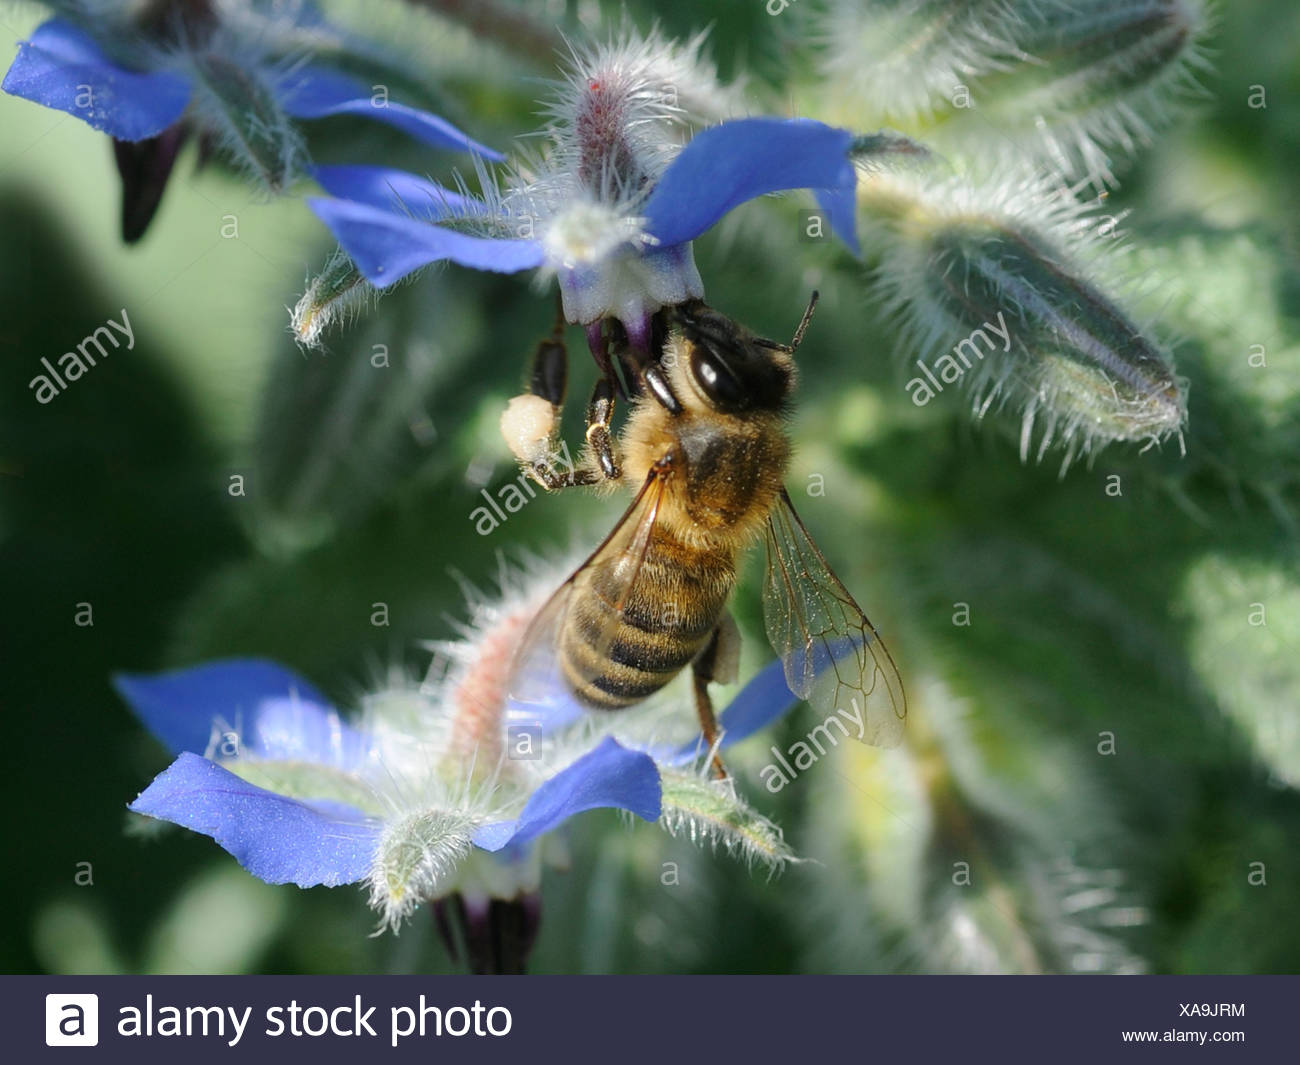 A wasp looking for nectar on a borage flower, on a borage plant Stock Photo